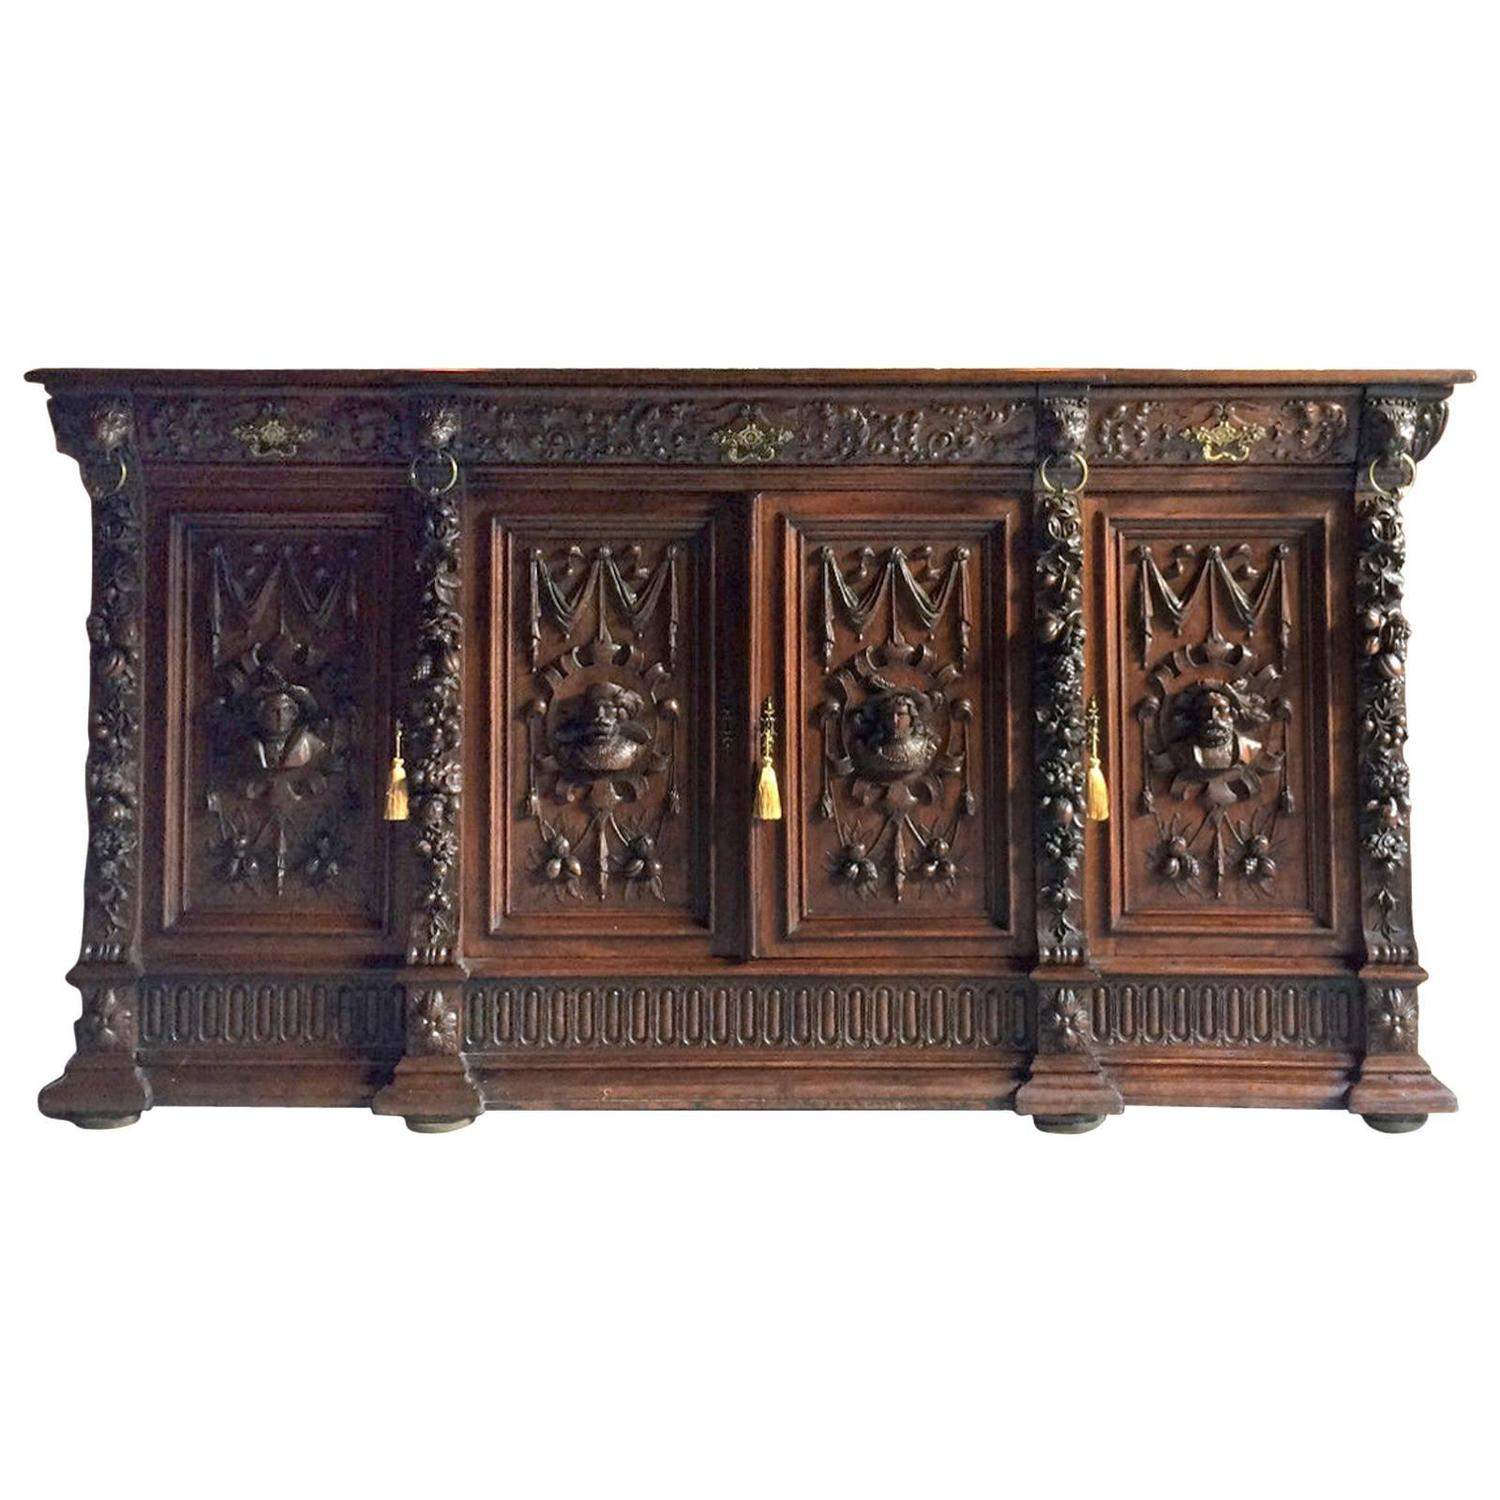 antique flemish gothic sideboard credenza victorian oak buffet 19th century at 1stdibs. Black Bedroom Furniture Sets. Home Design Ideas